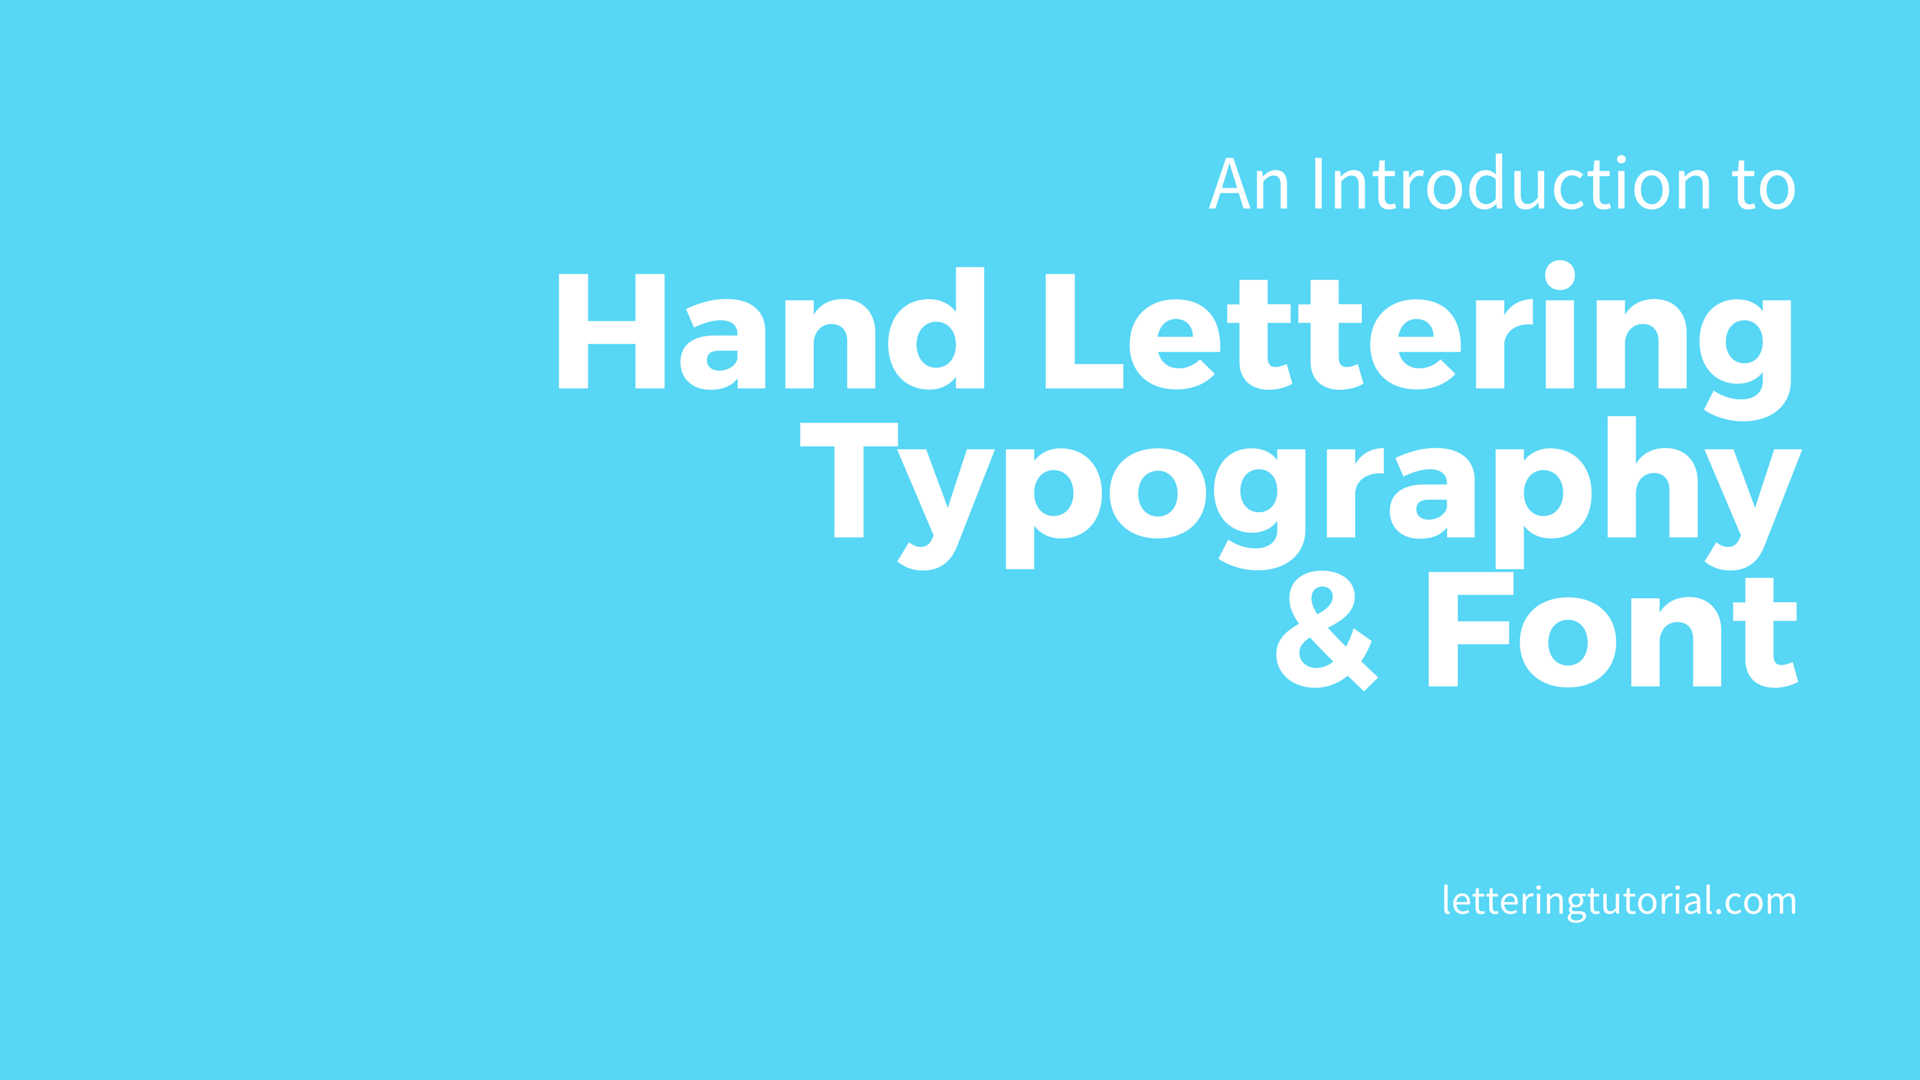 An Introduction to Hand Lettering